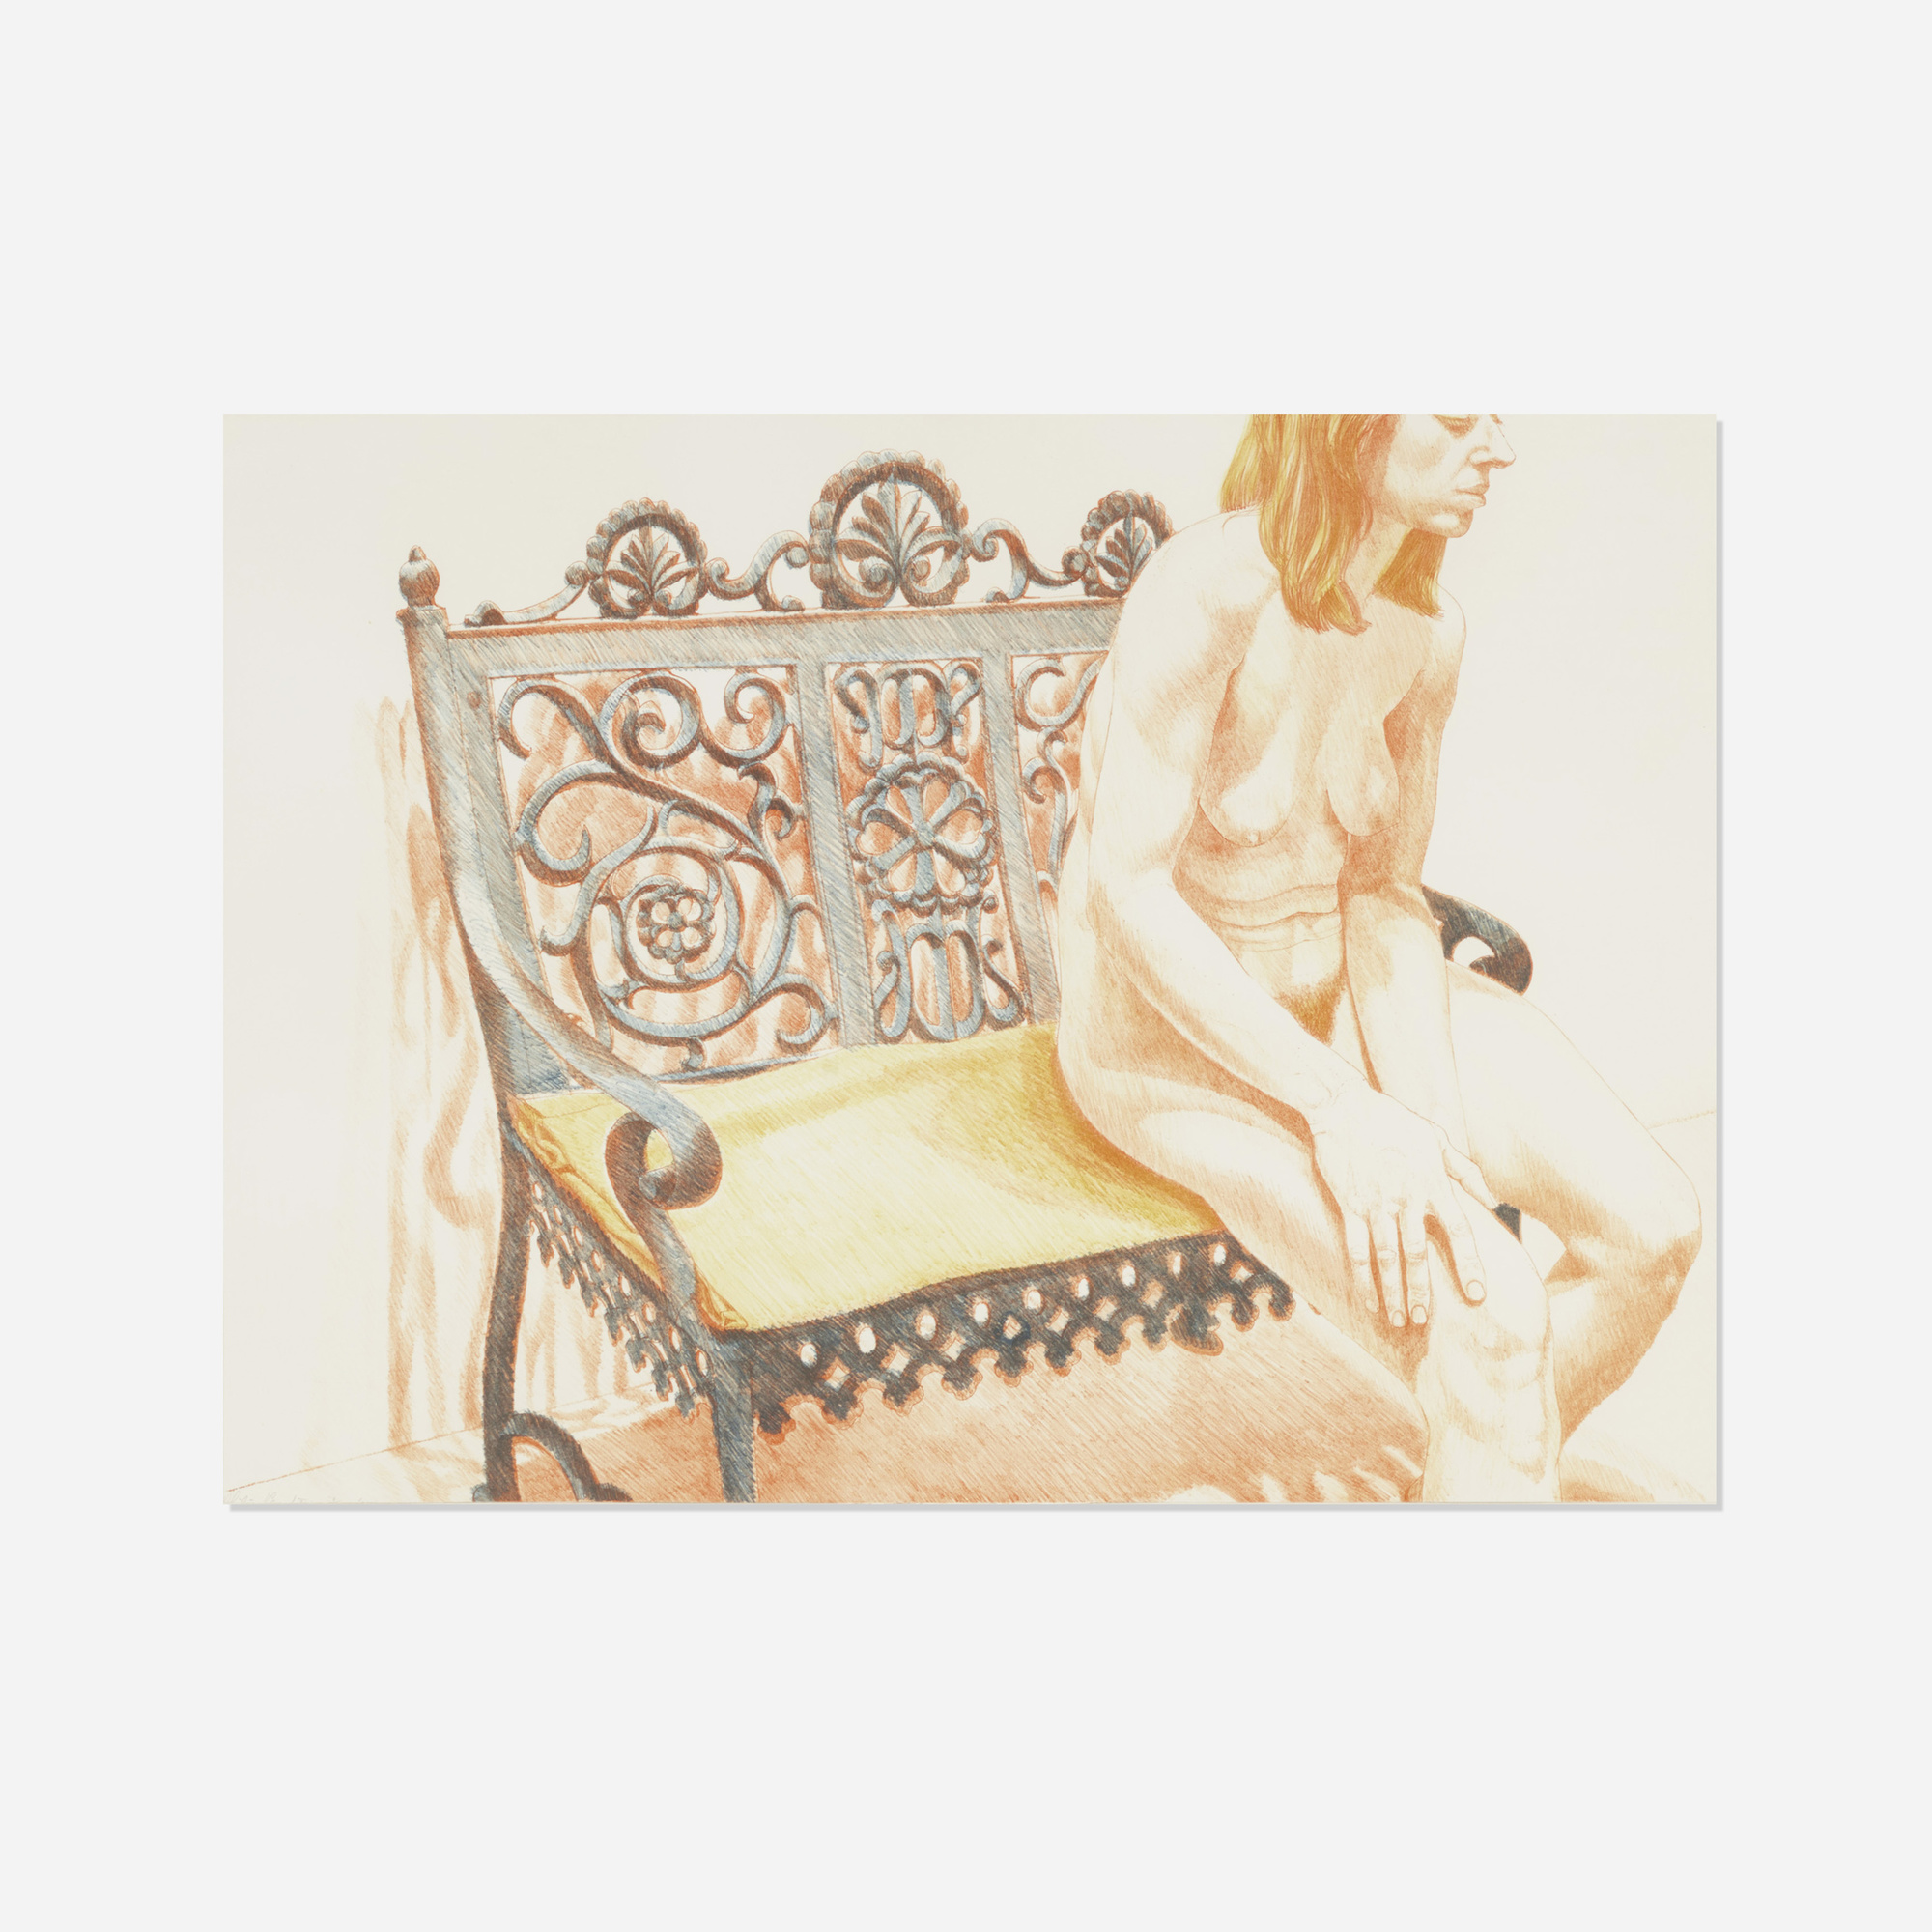 165: Philip Pearlstein / Girl on an Iron Bench (1 of 1)